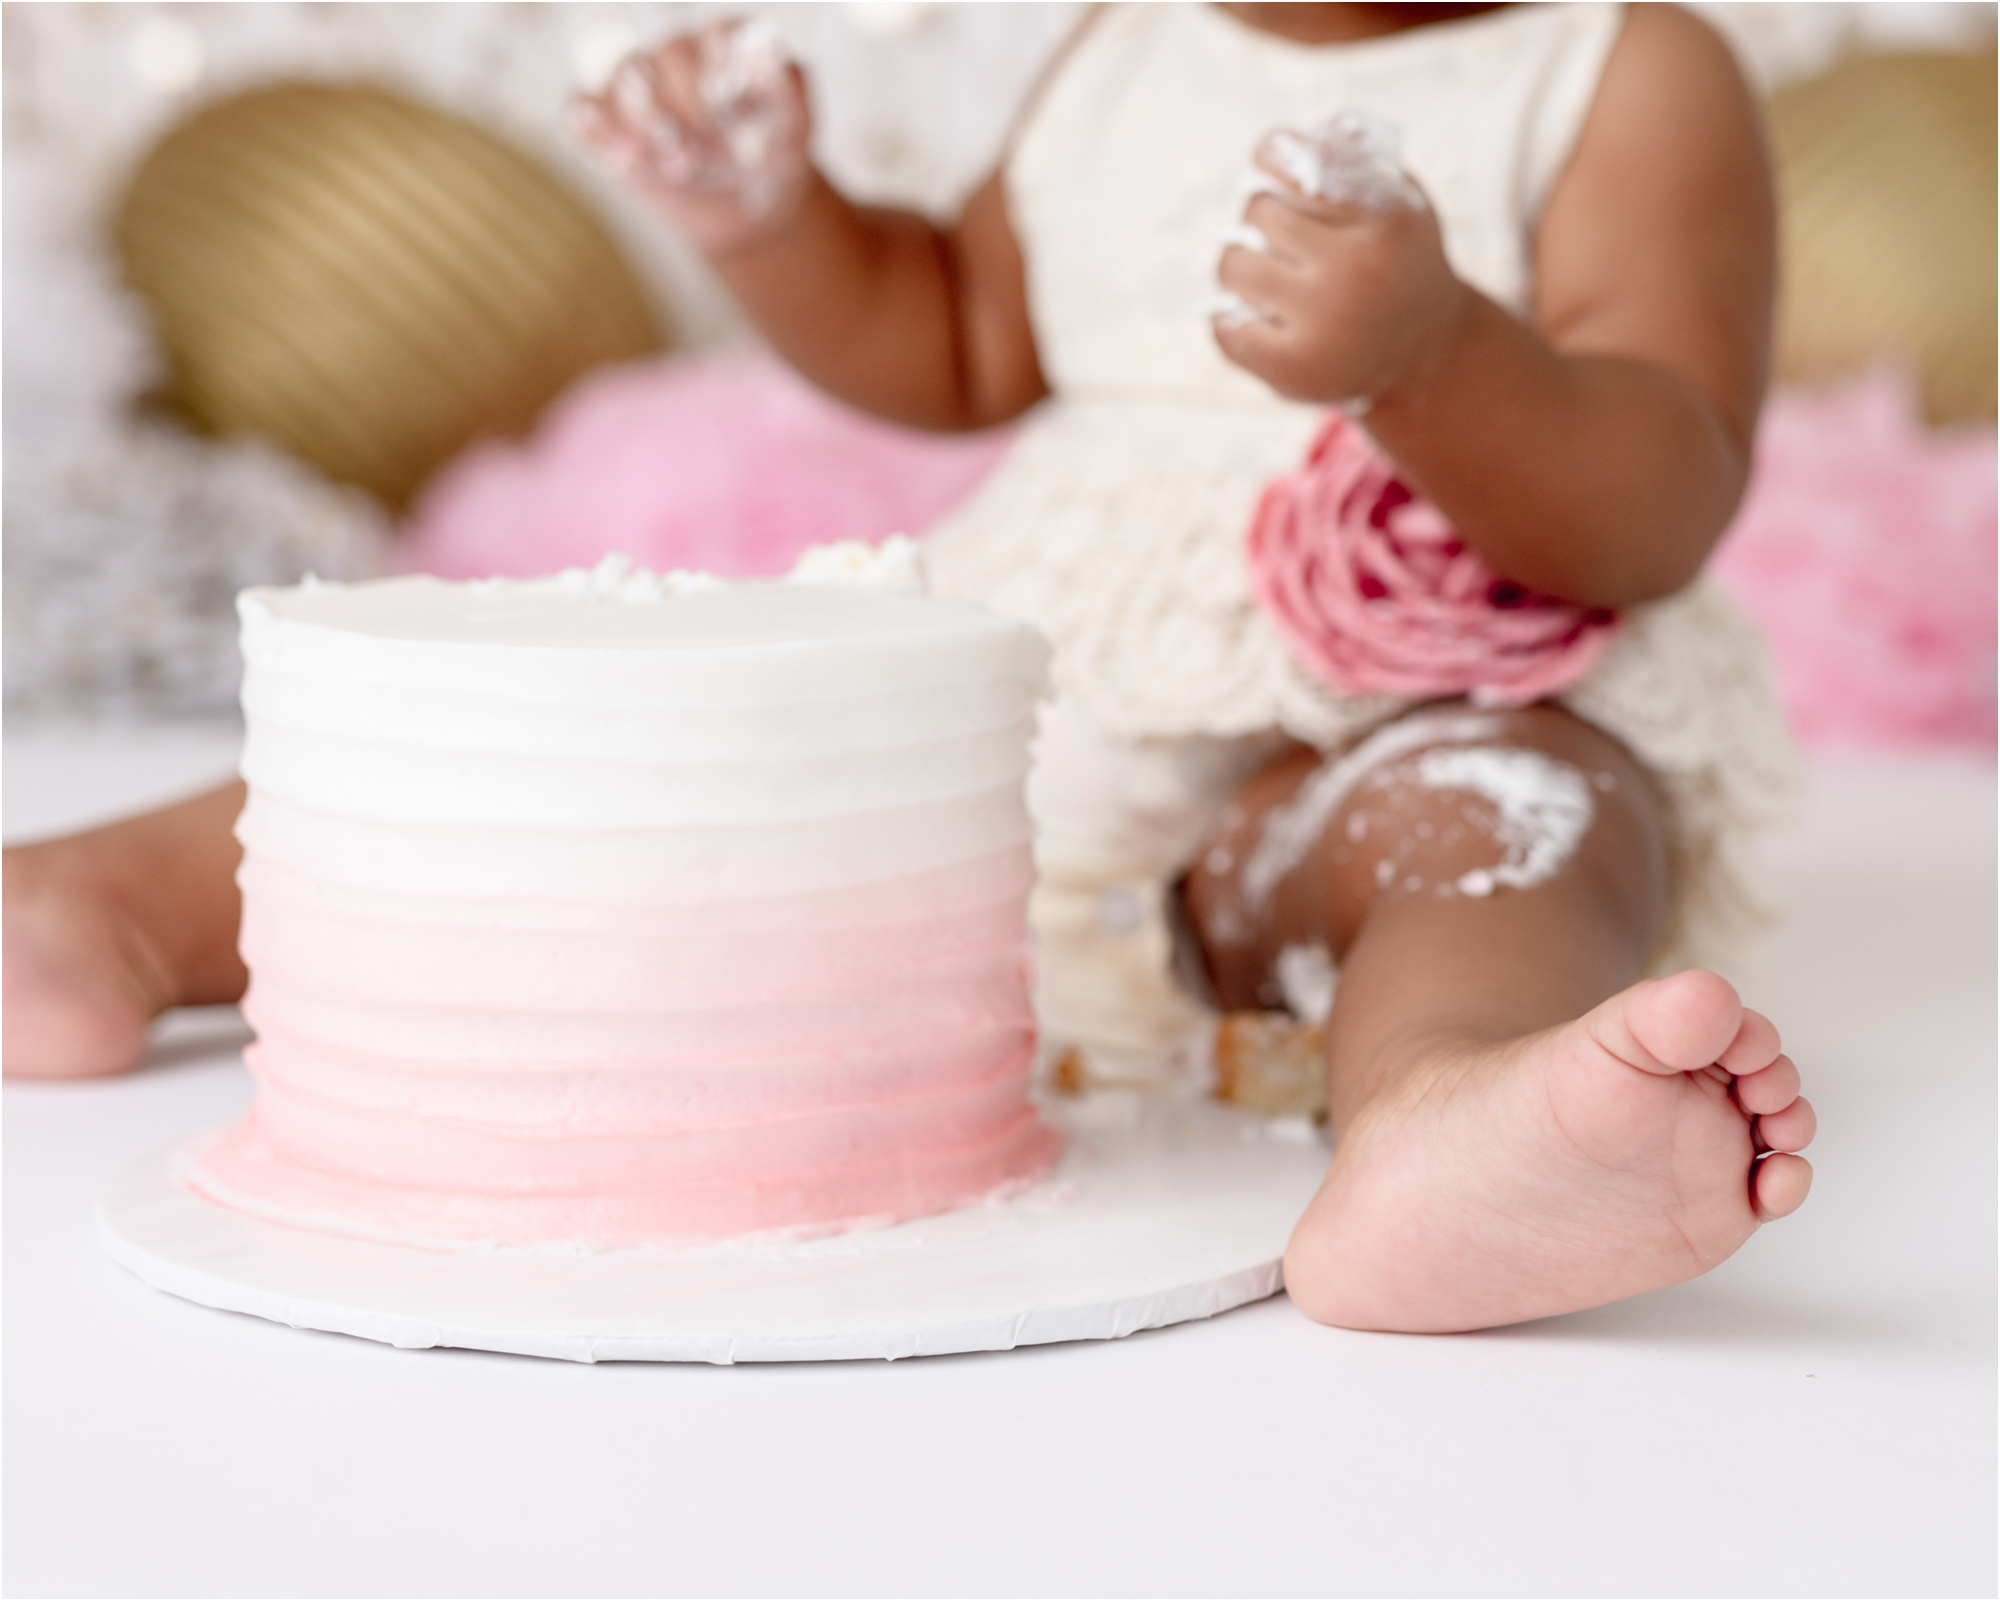 Pink ombre cake from pink and gold cake smash session. Photo by Lifetime of Clicks Photography.